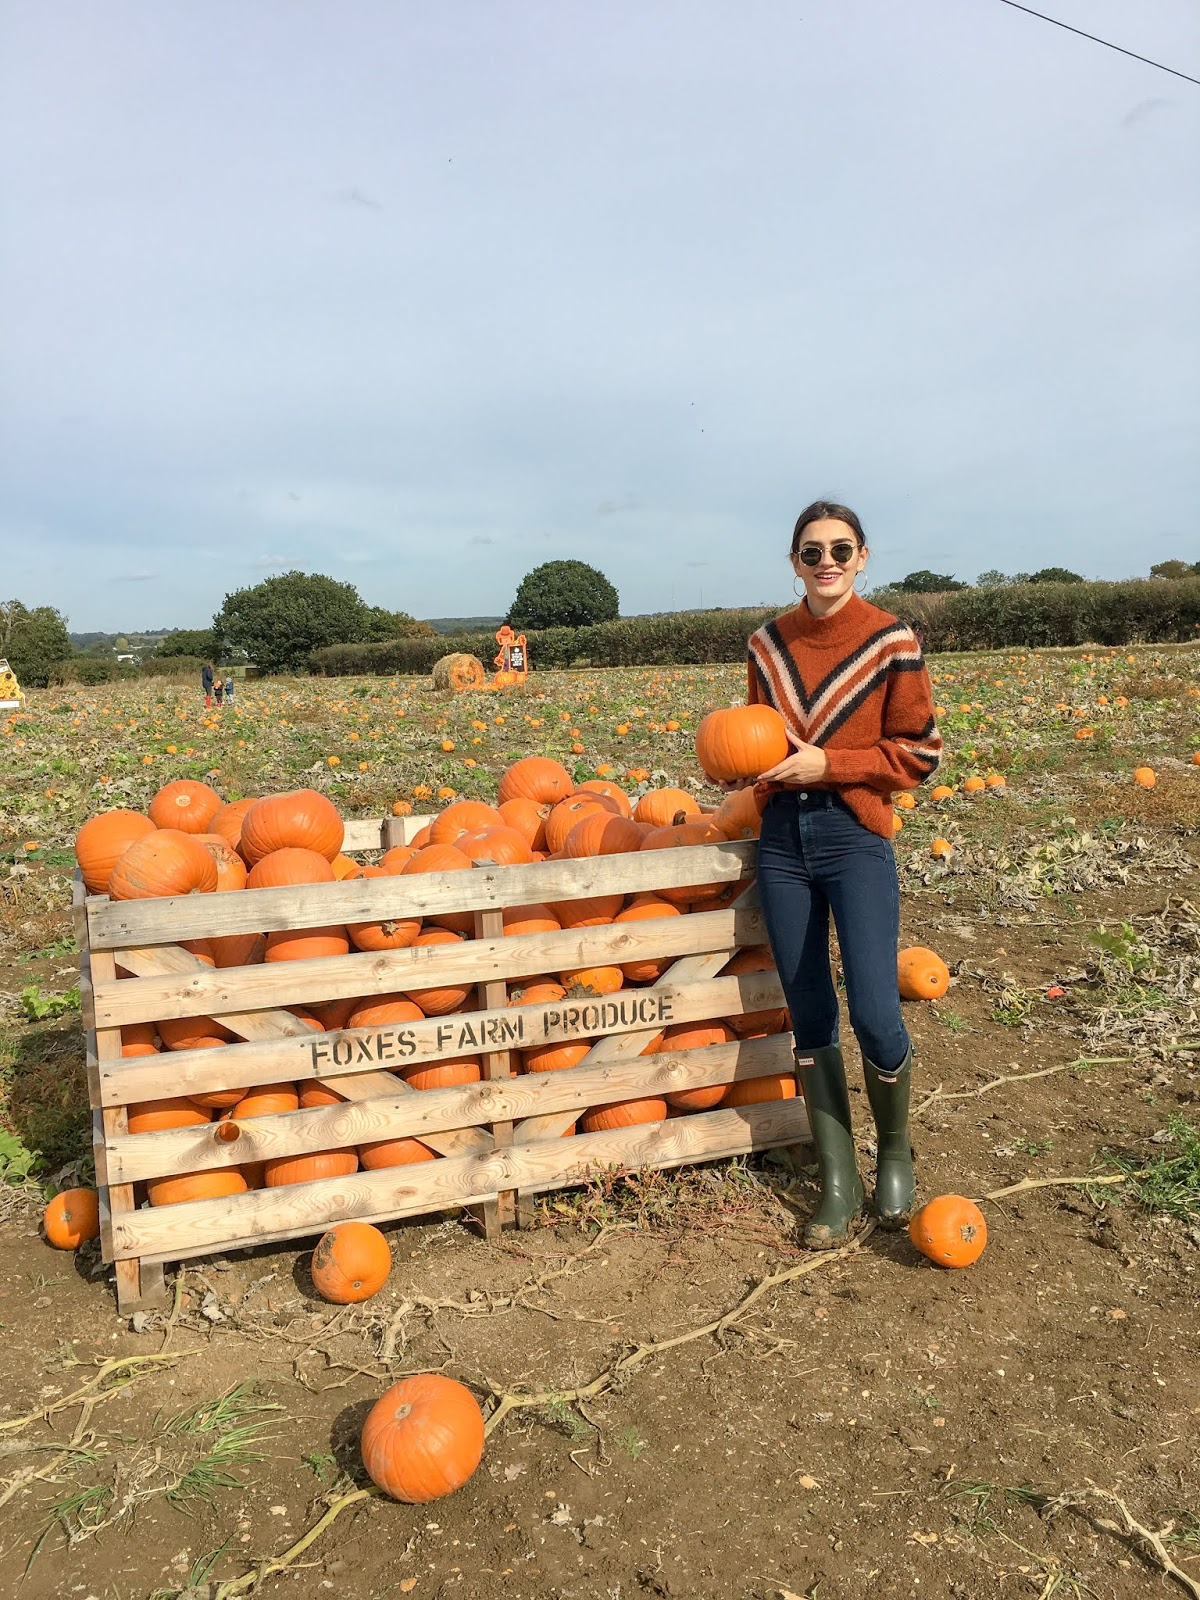 pumpkin patch london foxes farm produce